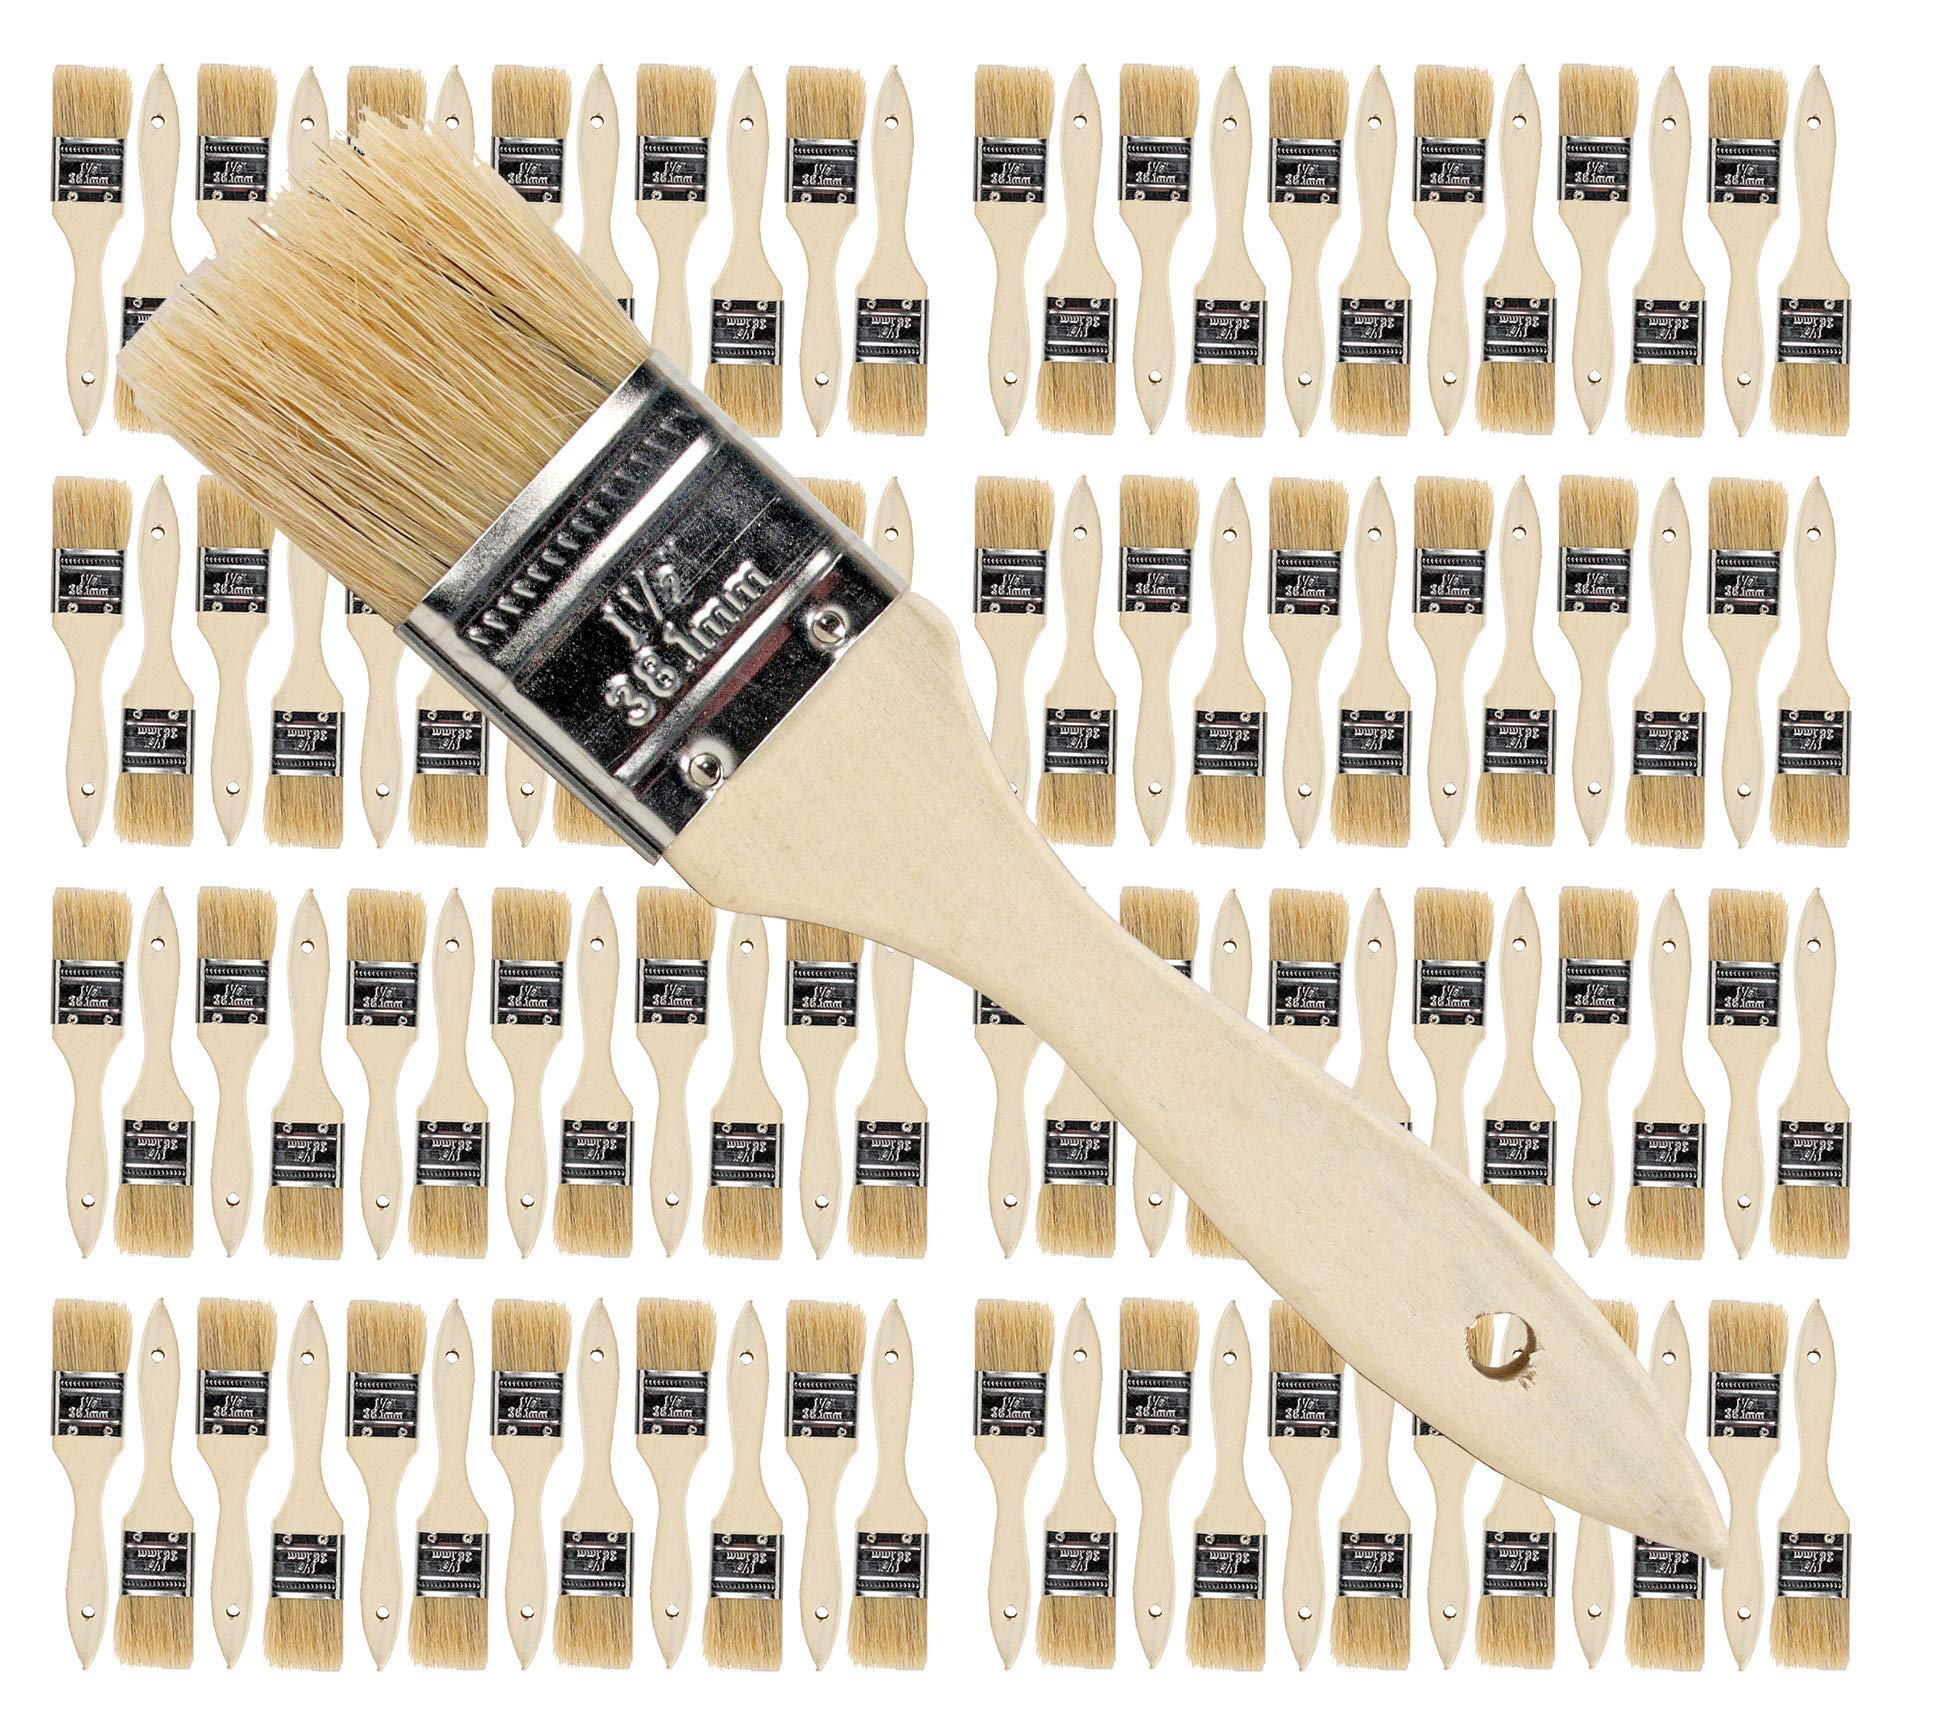 Pro Grade - Chip Paint Brushes - 96 Ea 1.5 Inch Chip Paint Brush by Pro-Grade